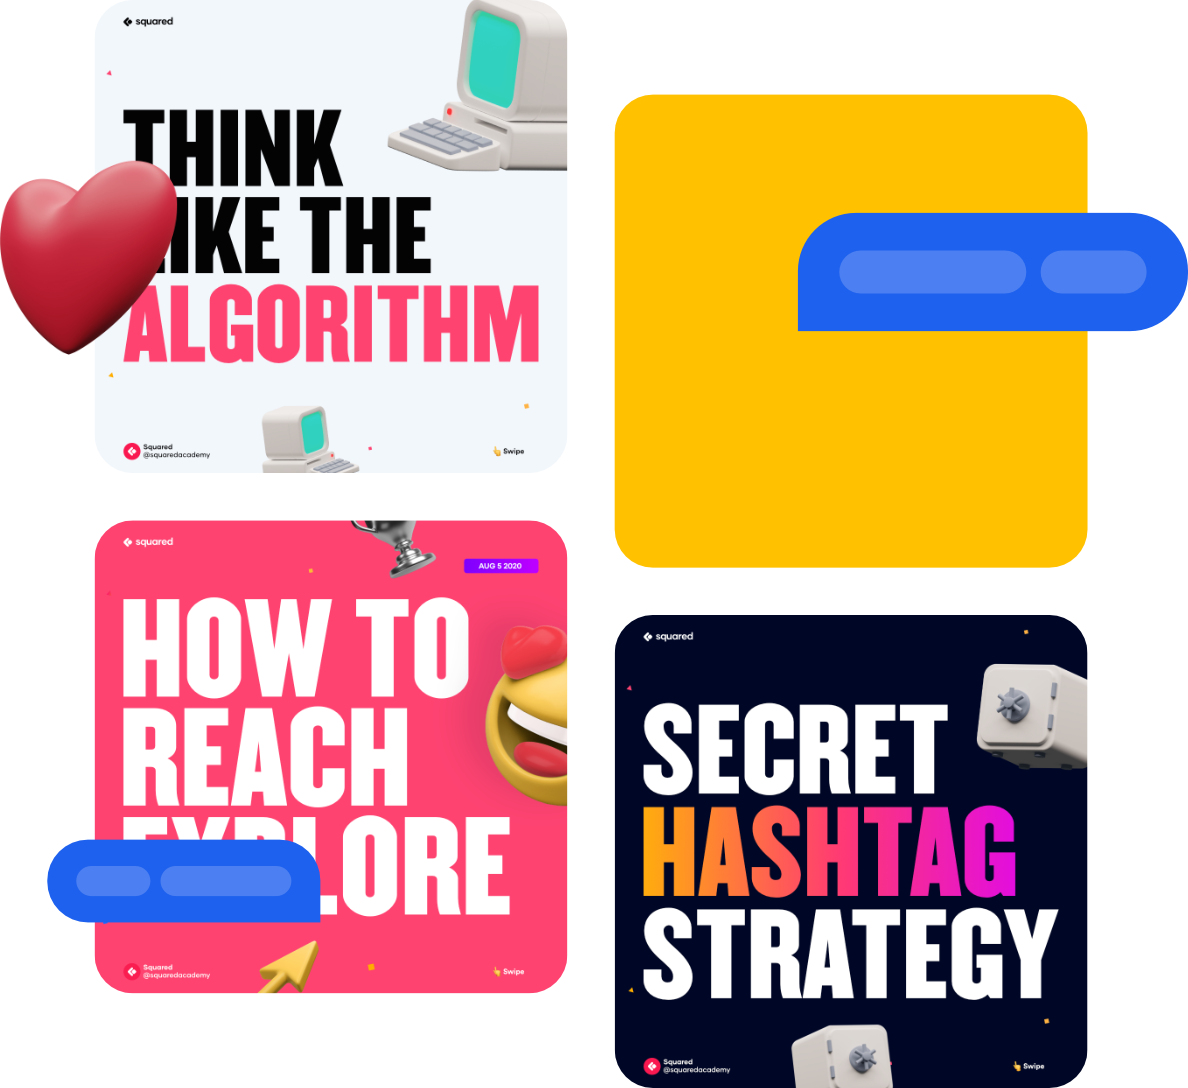 Instagram masterclass is a growth course for content creators.